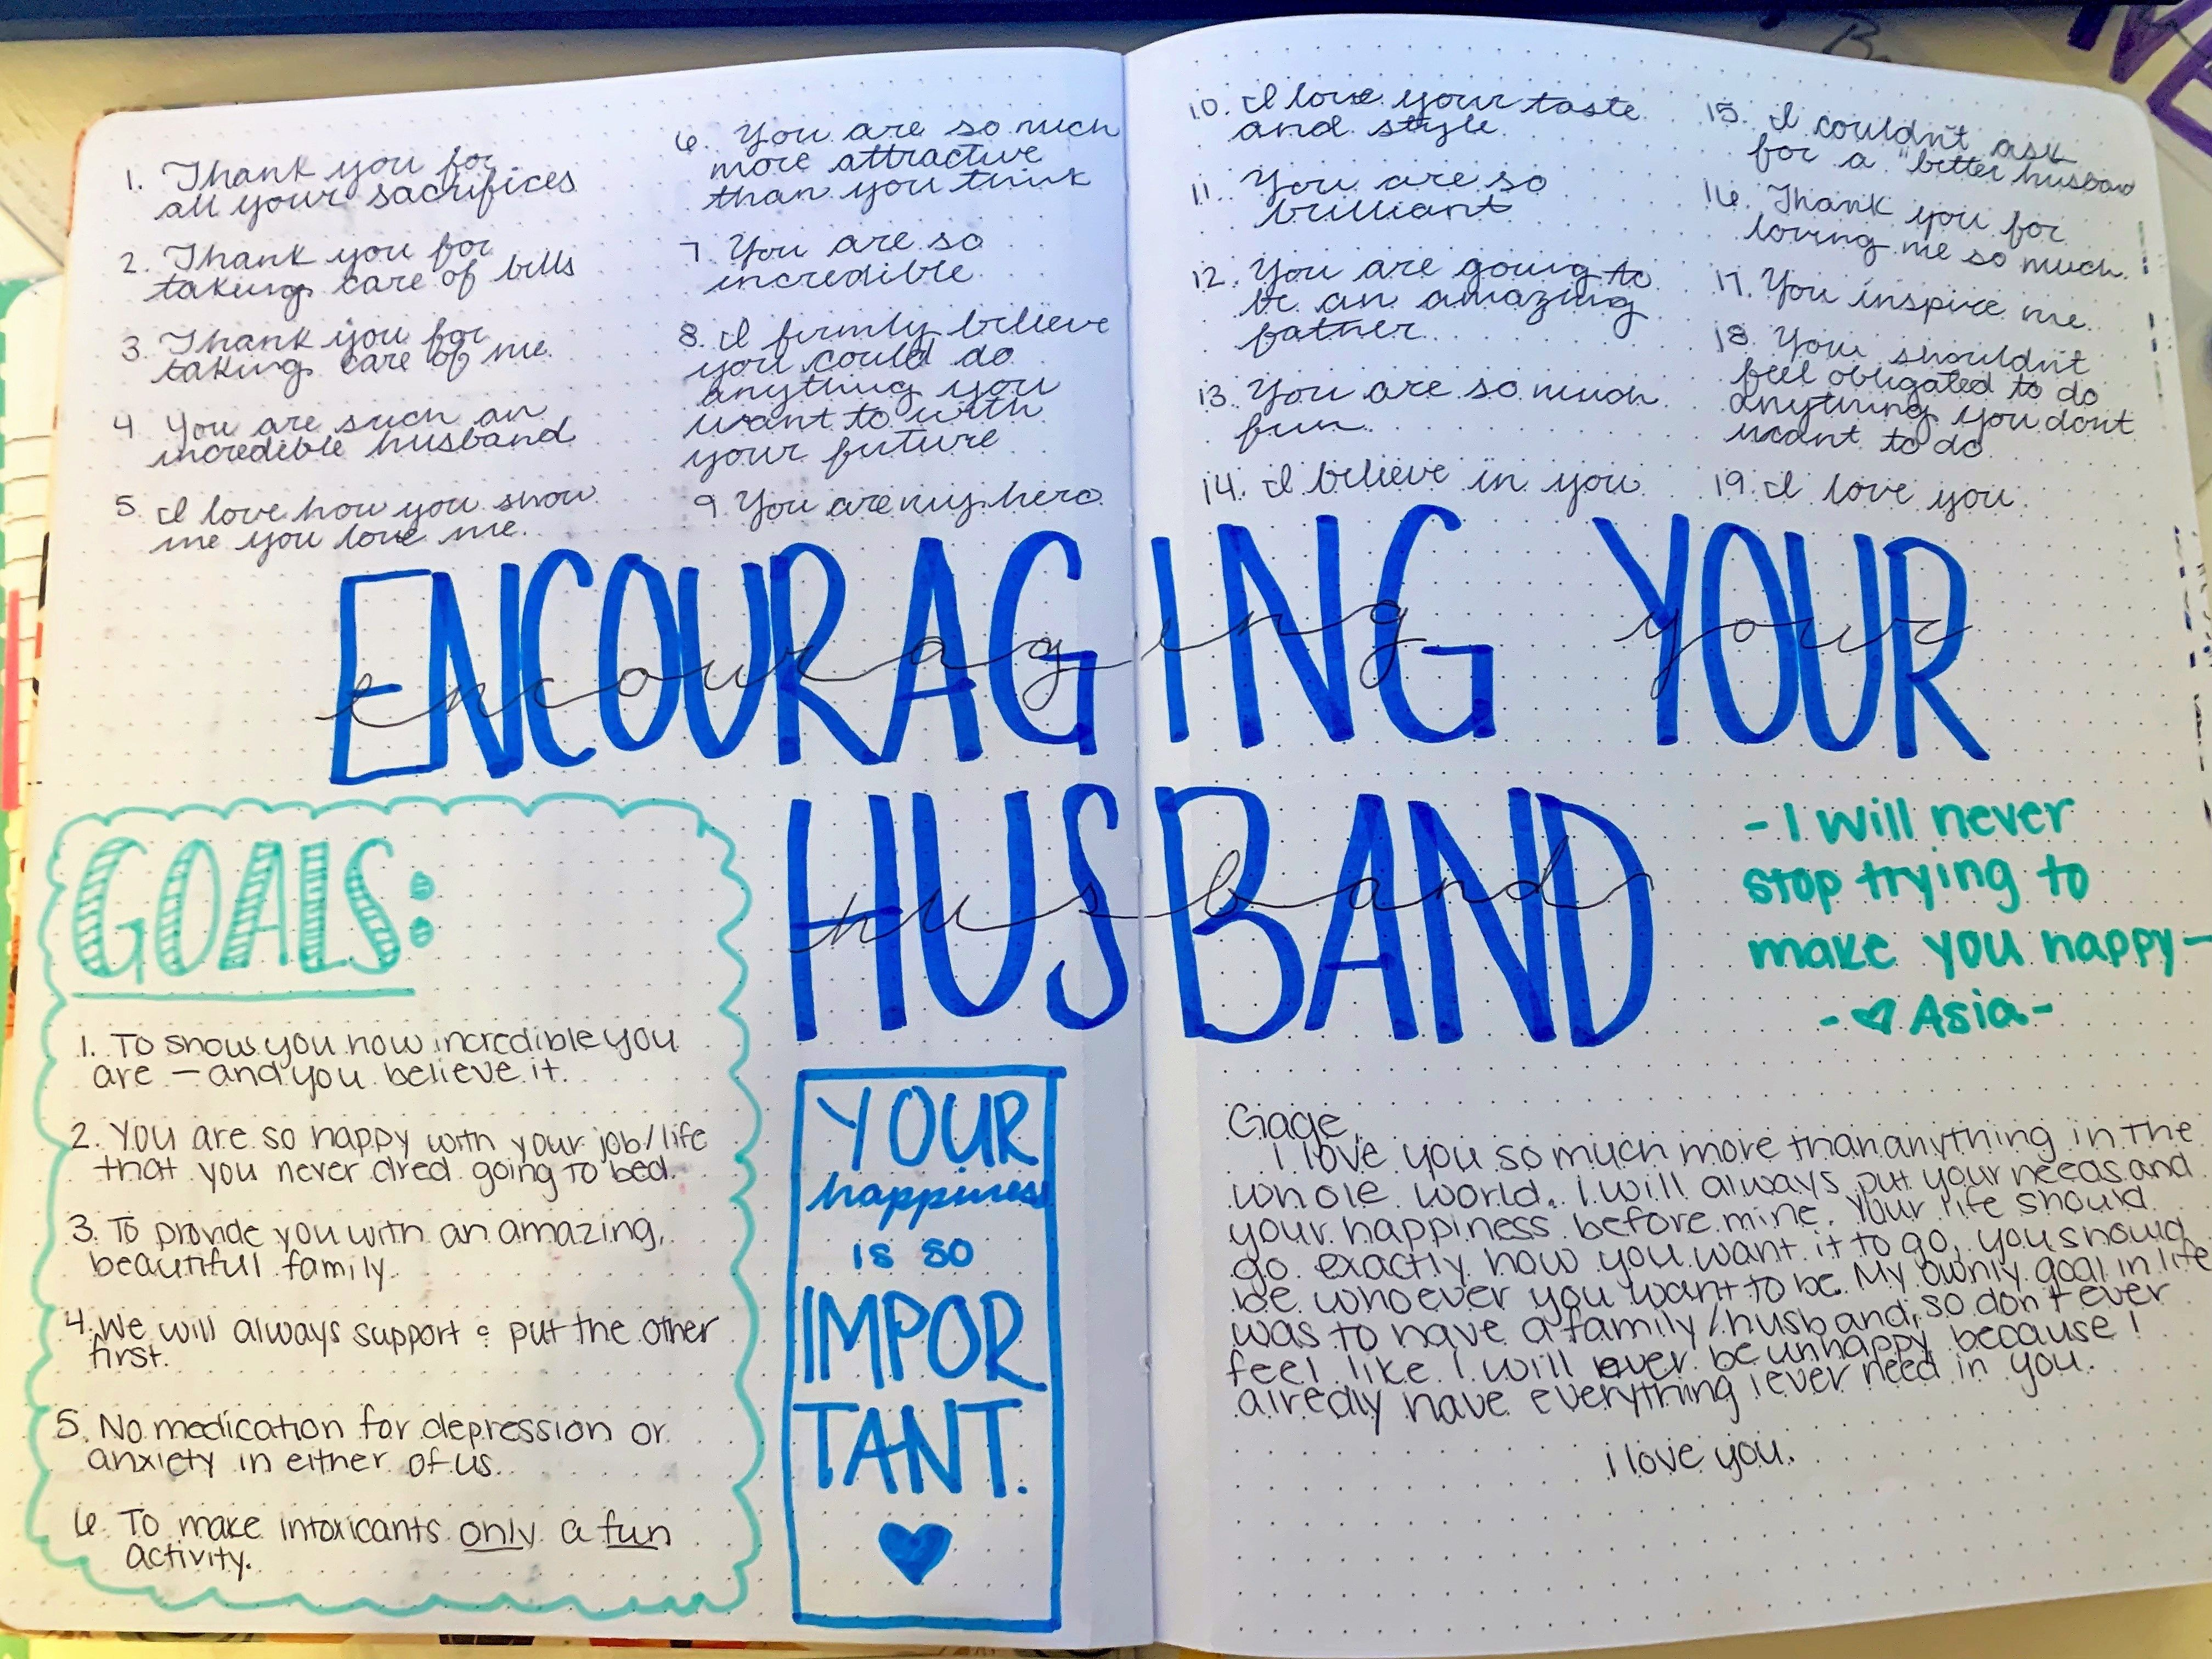 Encouraging your Spouse | Relationship journal, Bullet ...